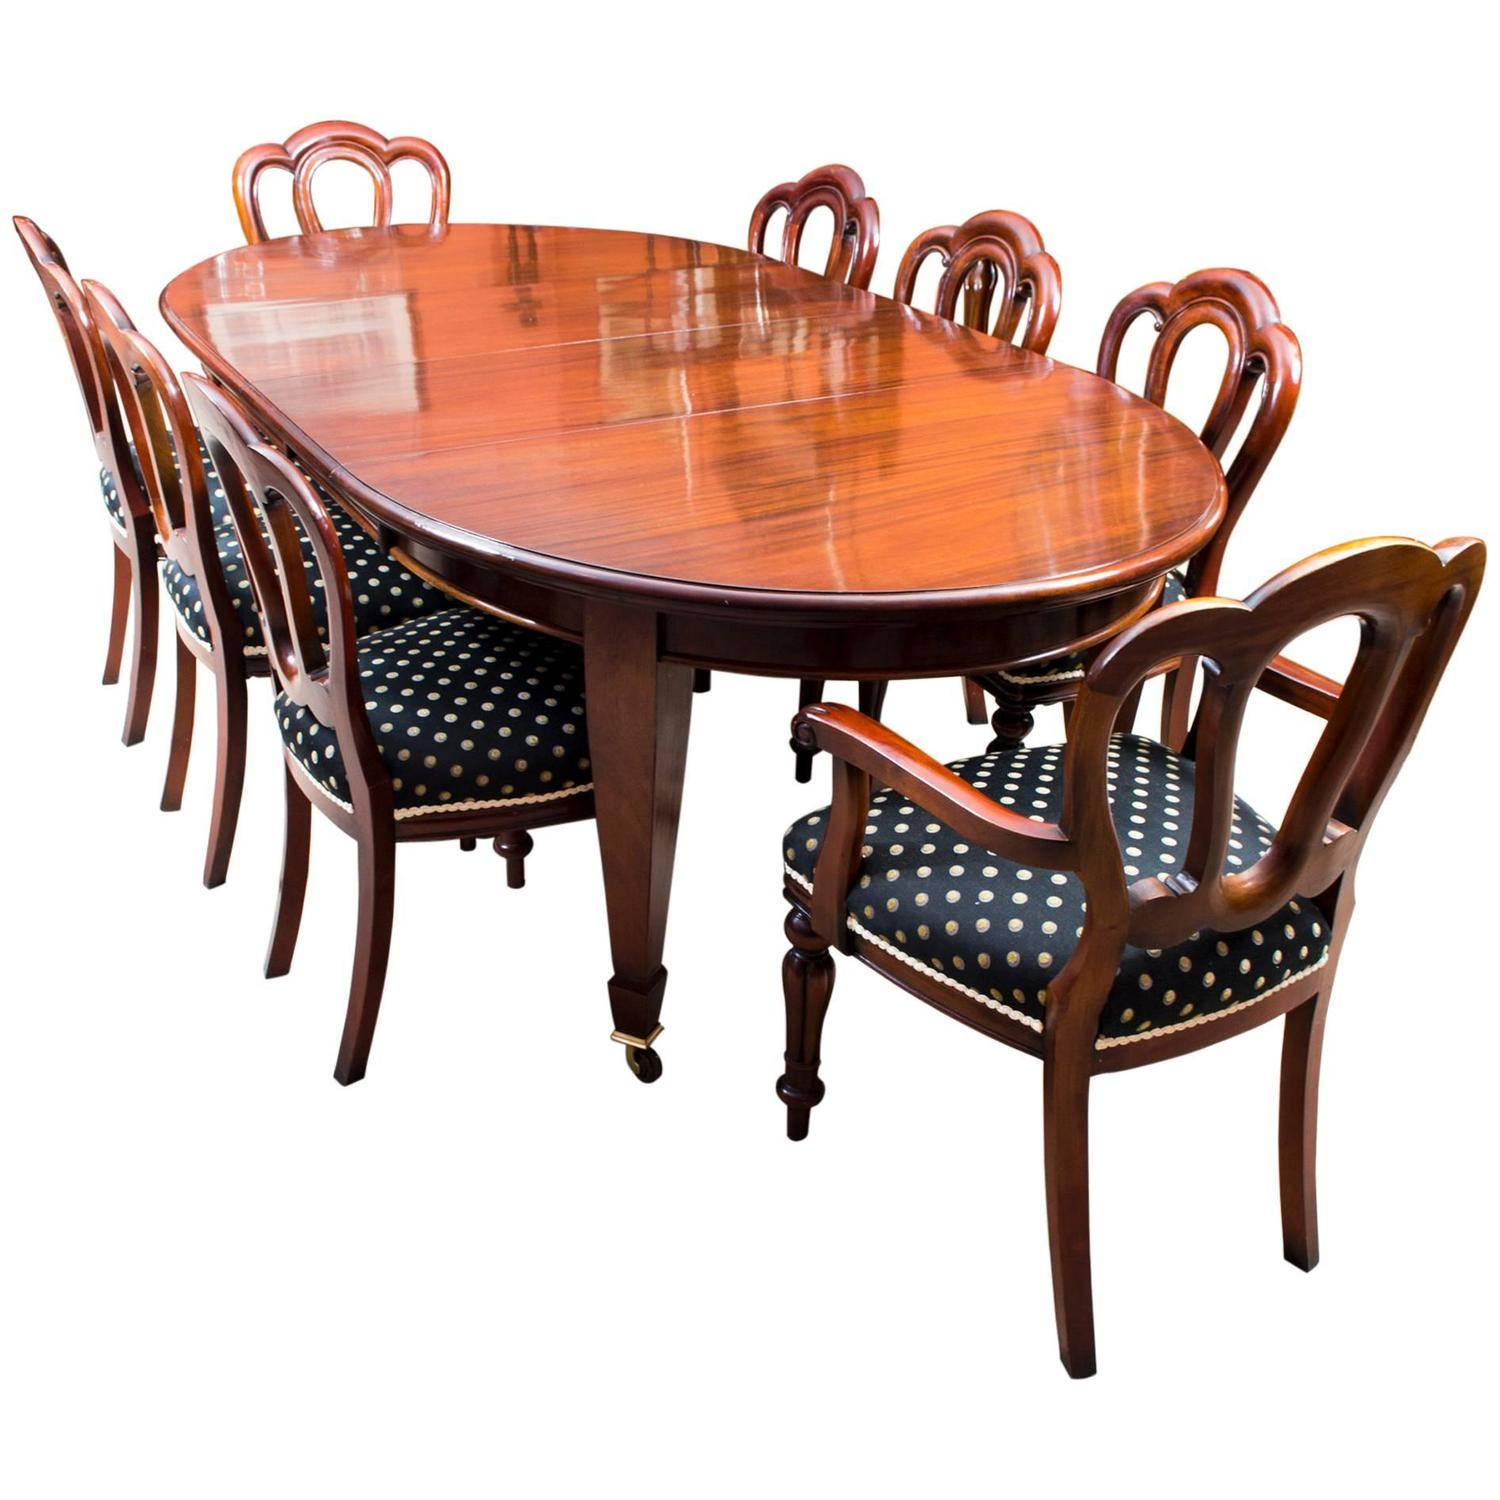 chair for dining table hammock stand nz antique edwardian eight chairs circa 1900 at